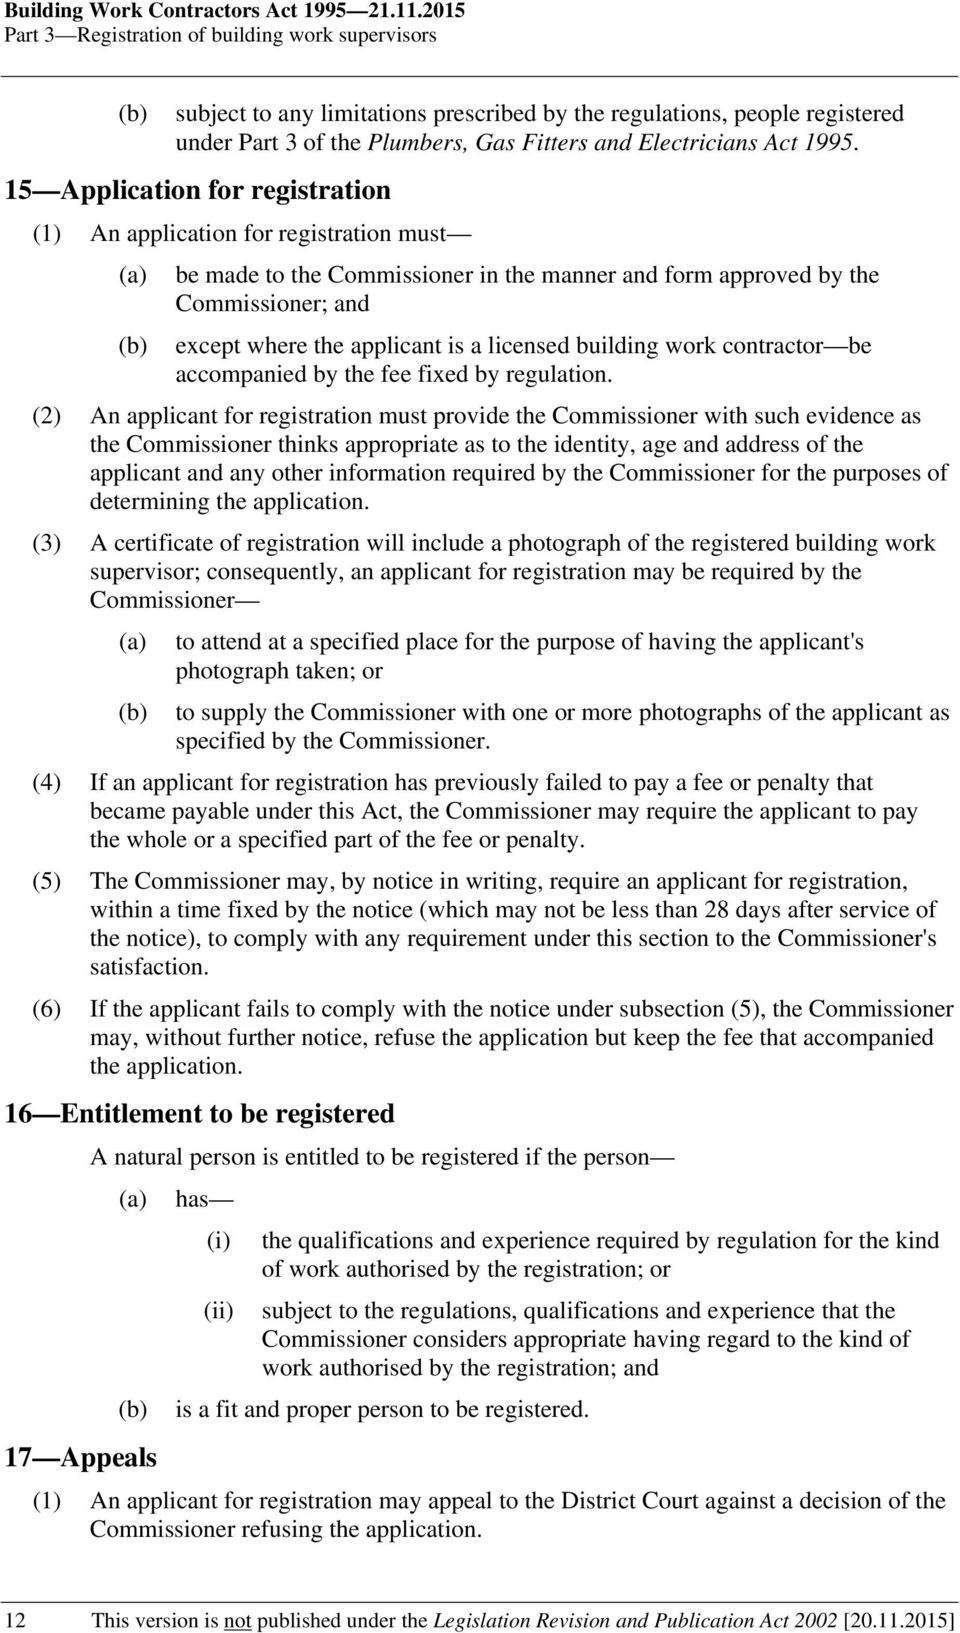 15 Application for registration (1) An application for registration must be made to the Commissioner in the manner and form approved by the Commissioner; and except where the applicant is a licensed